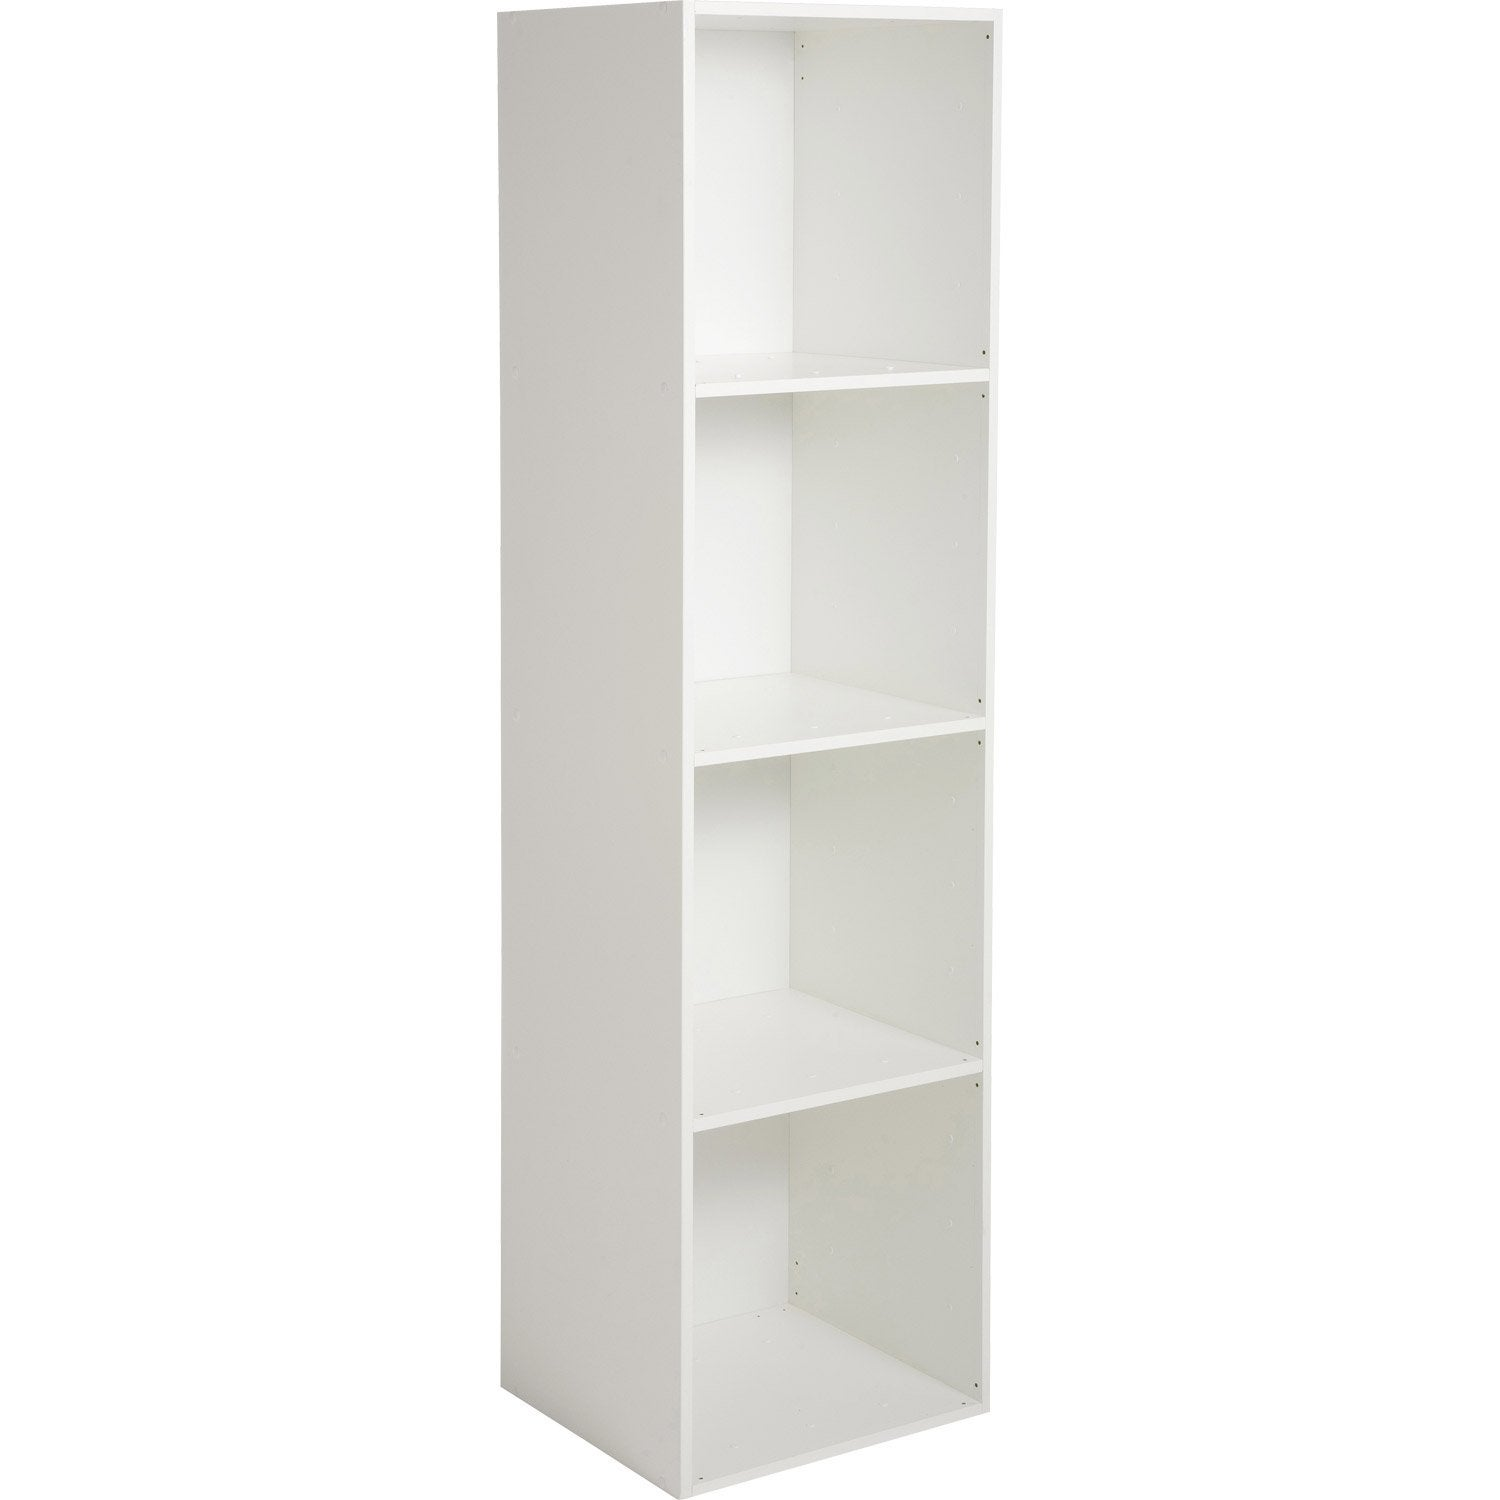 Etag re 4 cases multikaz blanc x x for Meuble etagere pas cher